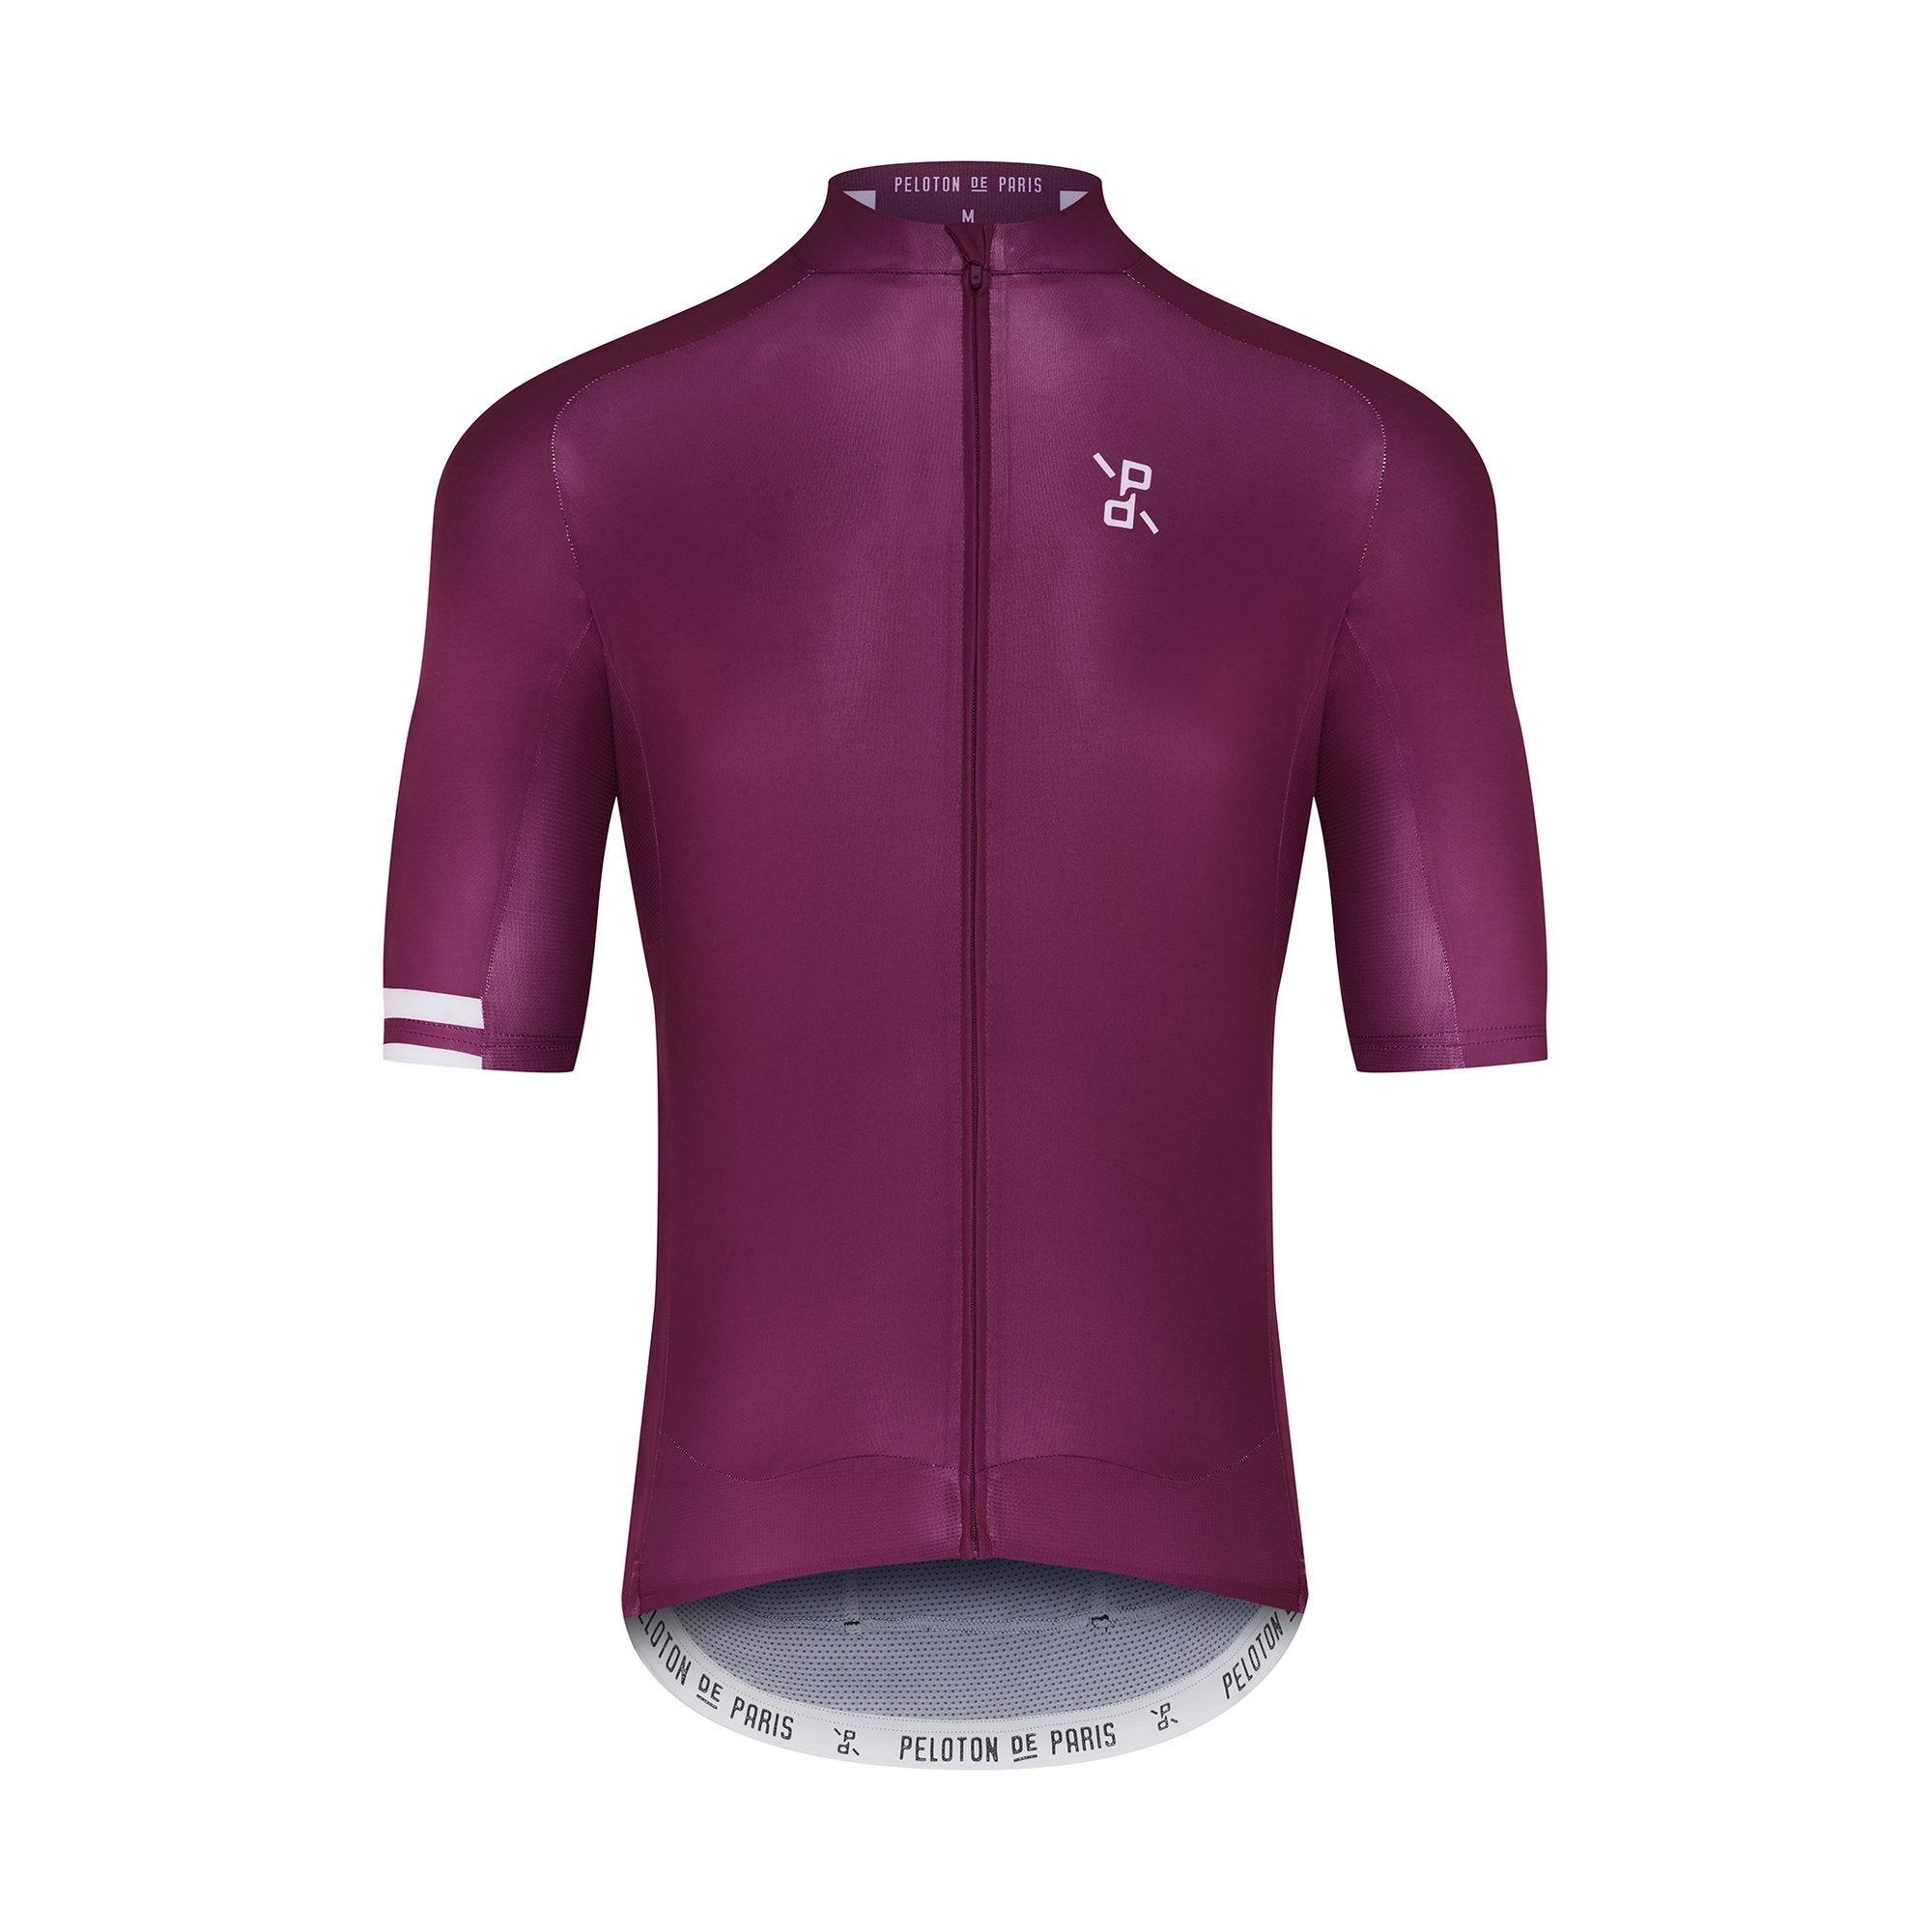 Peloton de Paris Deep Purple Recon サイクルジャージ | CYCLISM